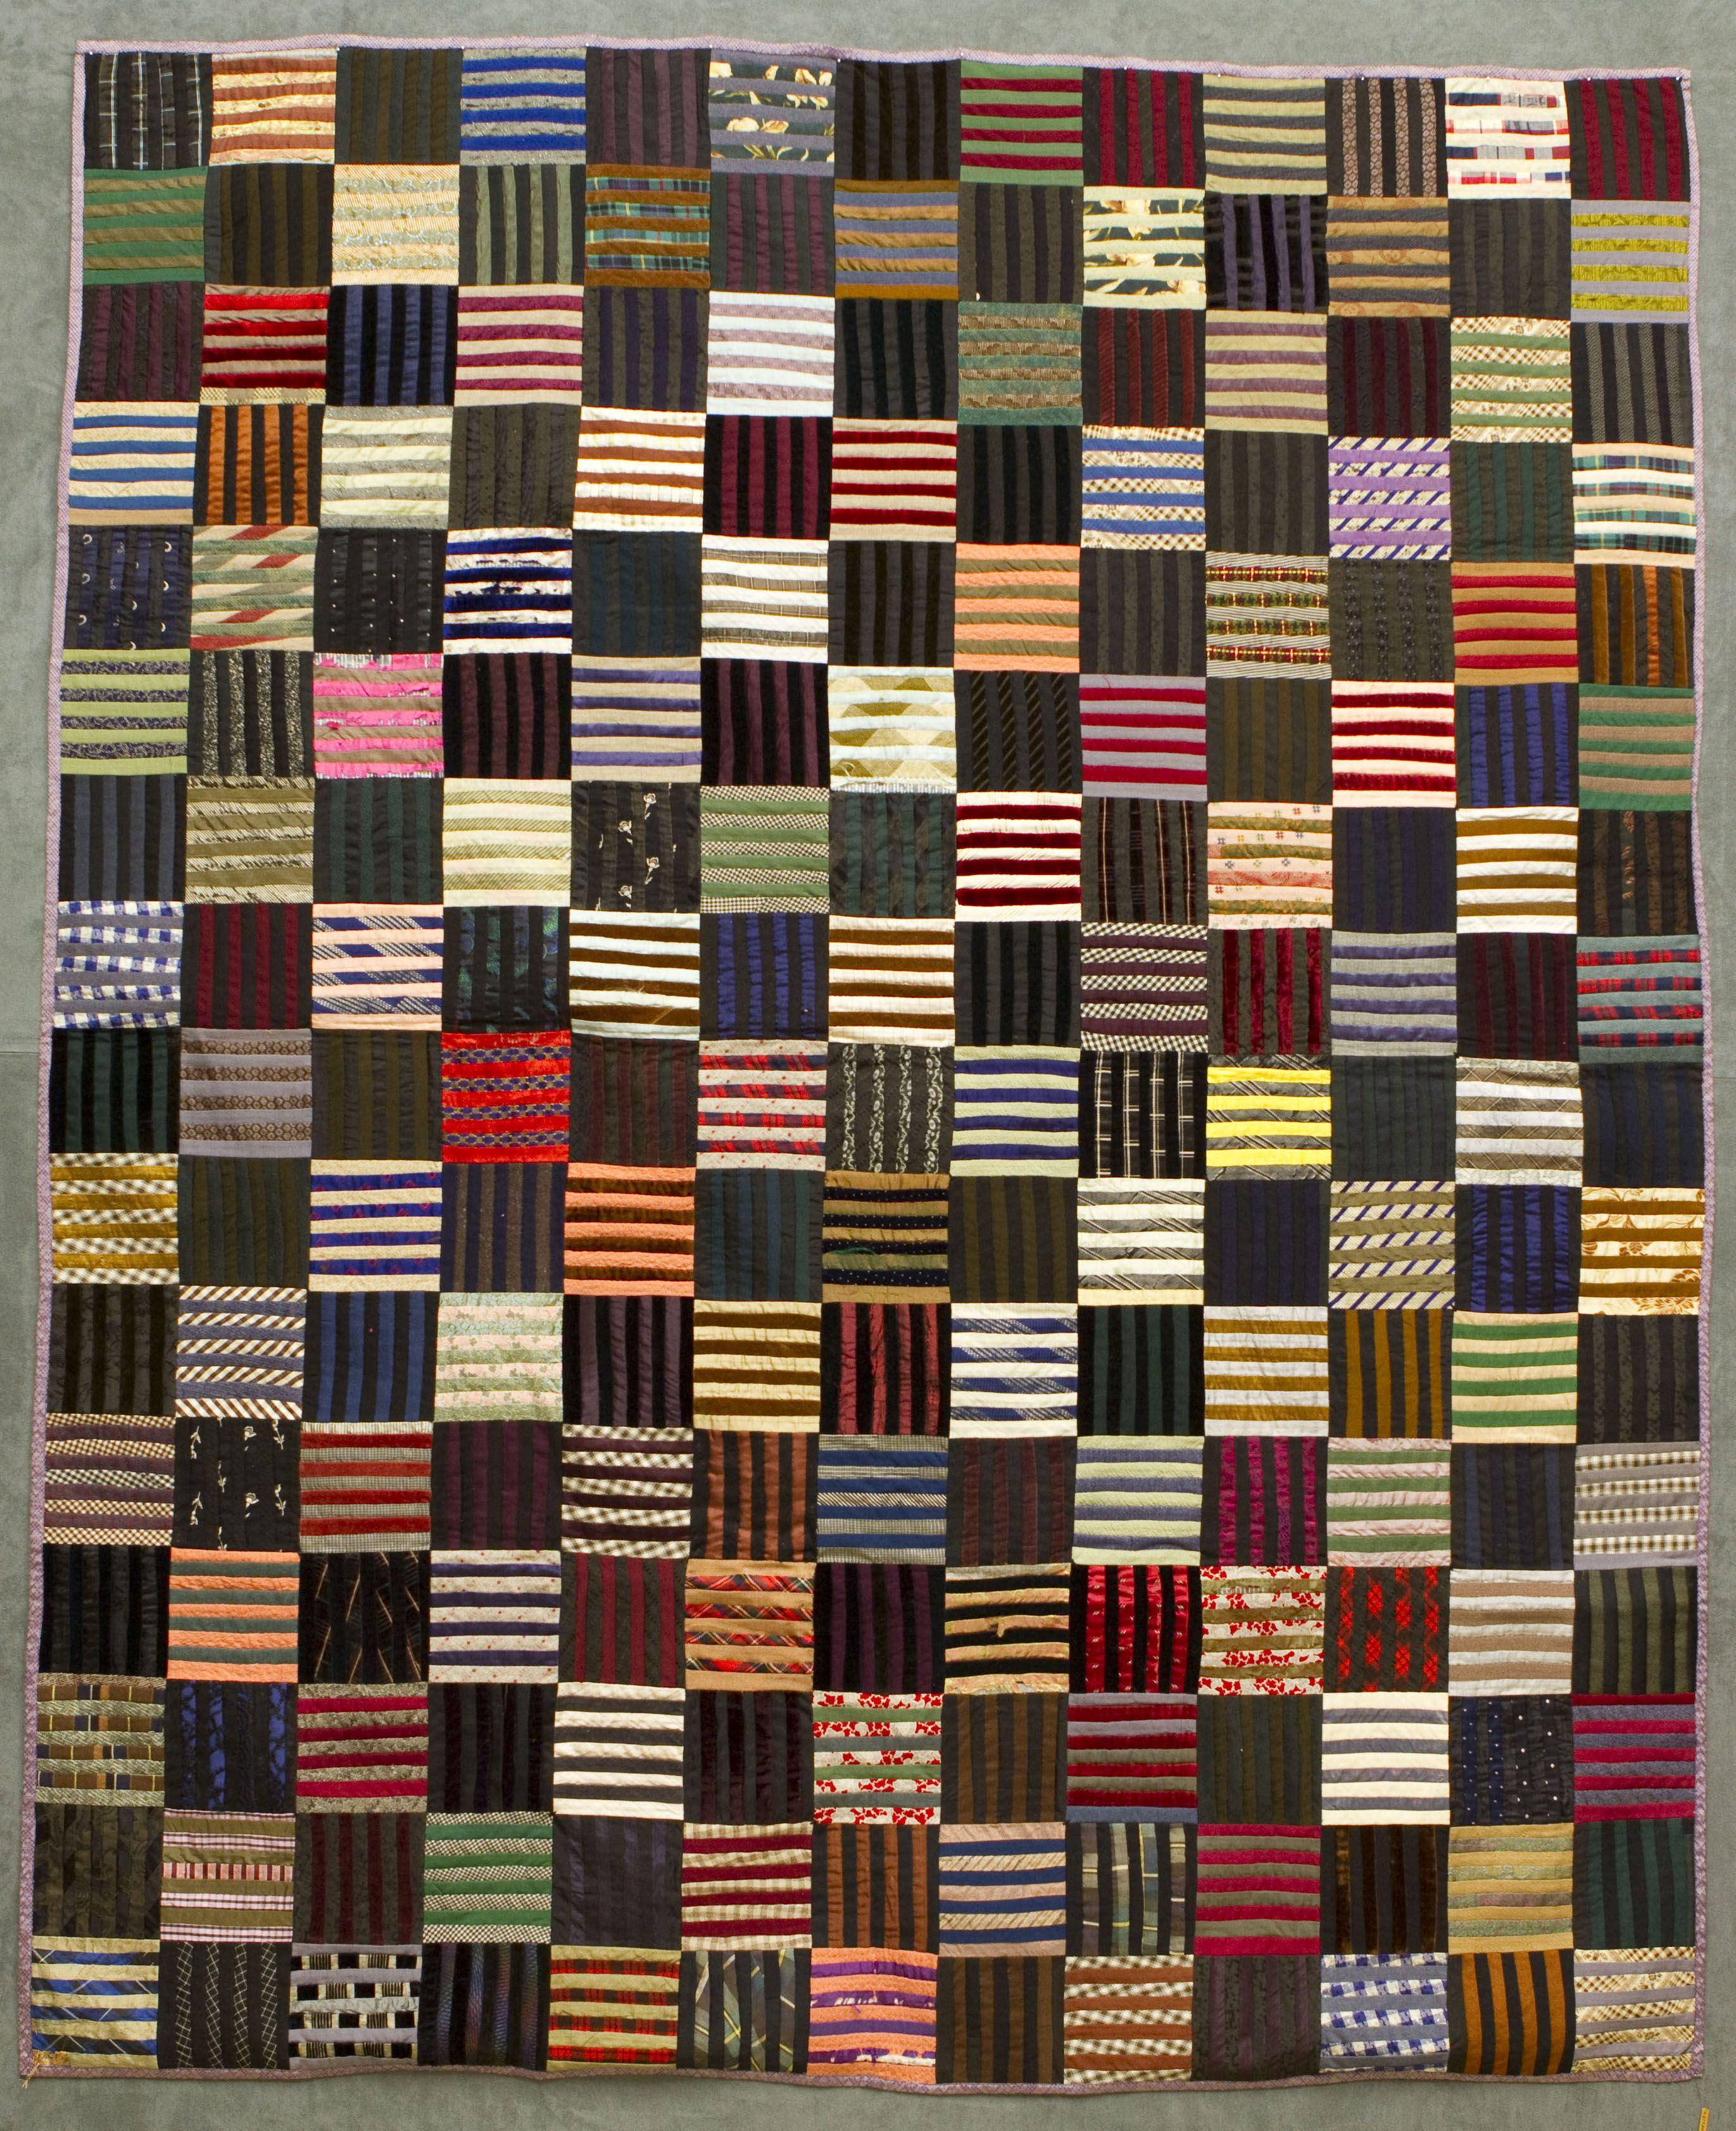 The Roman Stripe Quilt was made in c.1900 by Mrs. Moss's grandmother, Mrs. Gregon McGowan in Blyth, Huron County, ON. It was brought to Edmonton, Alta. in 1923 when Mr. Moss got a botanist position at the U of A. The black fabric is from mourning clothes (popular during the Victorian era) re-cycled after use.